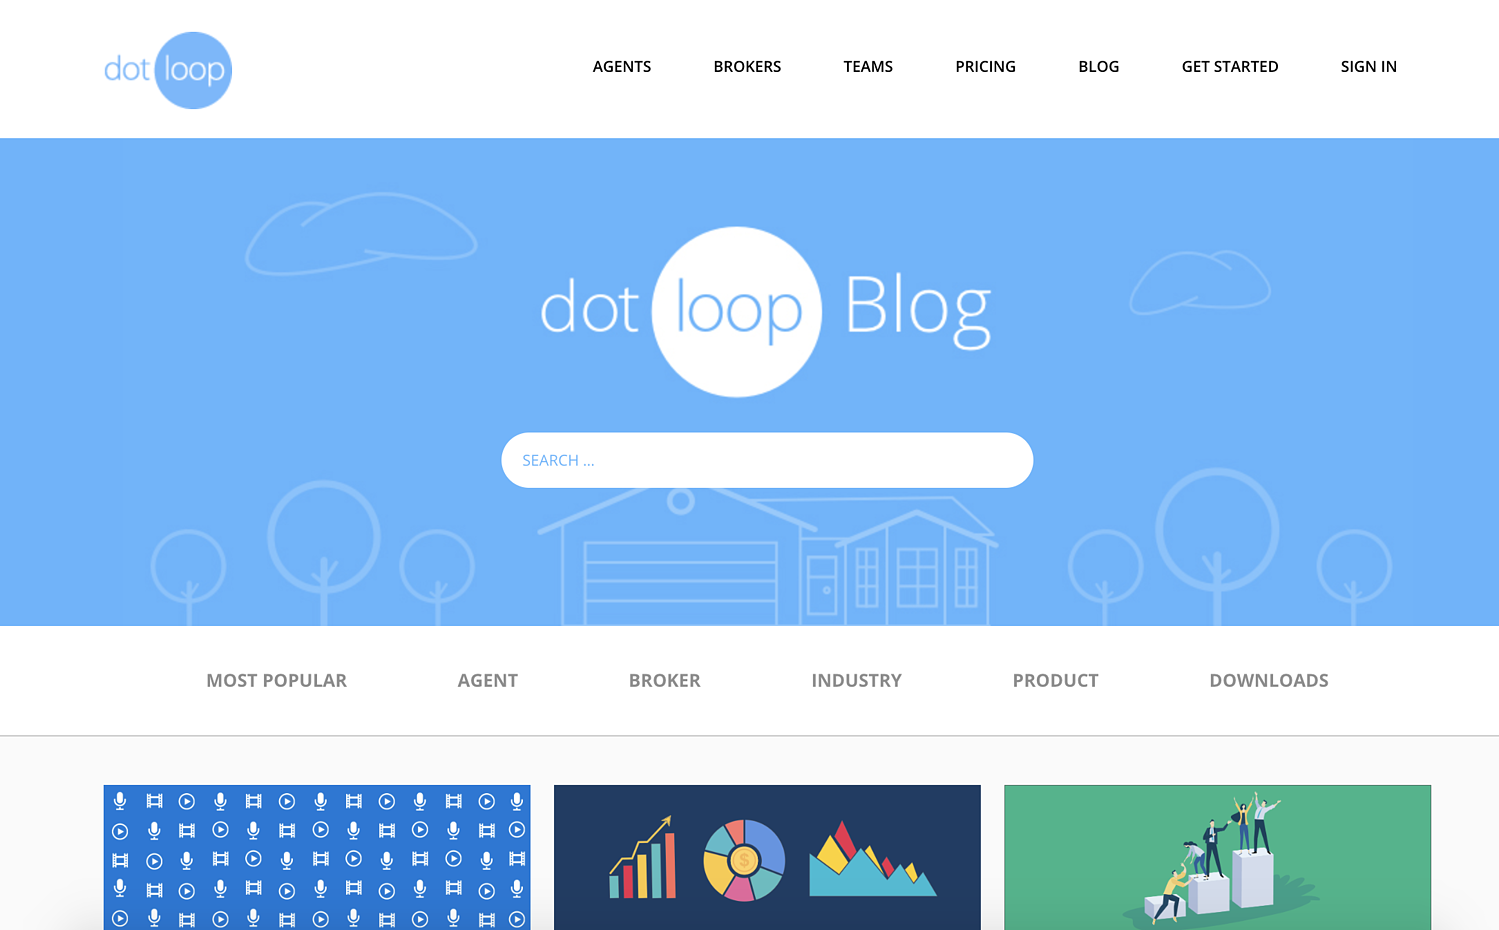 Dotloop-blog